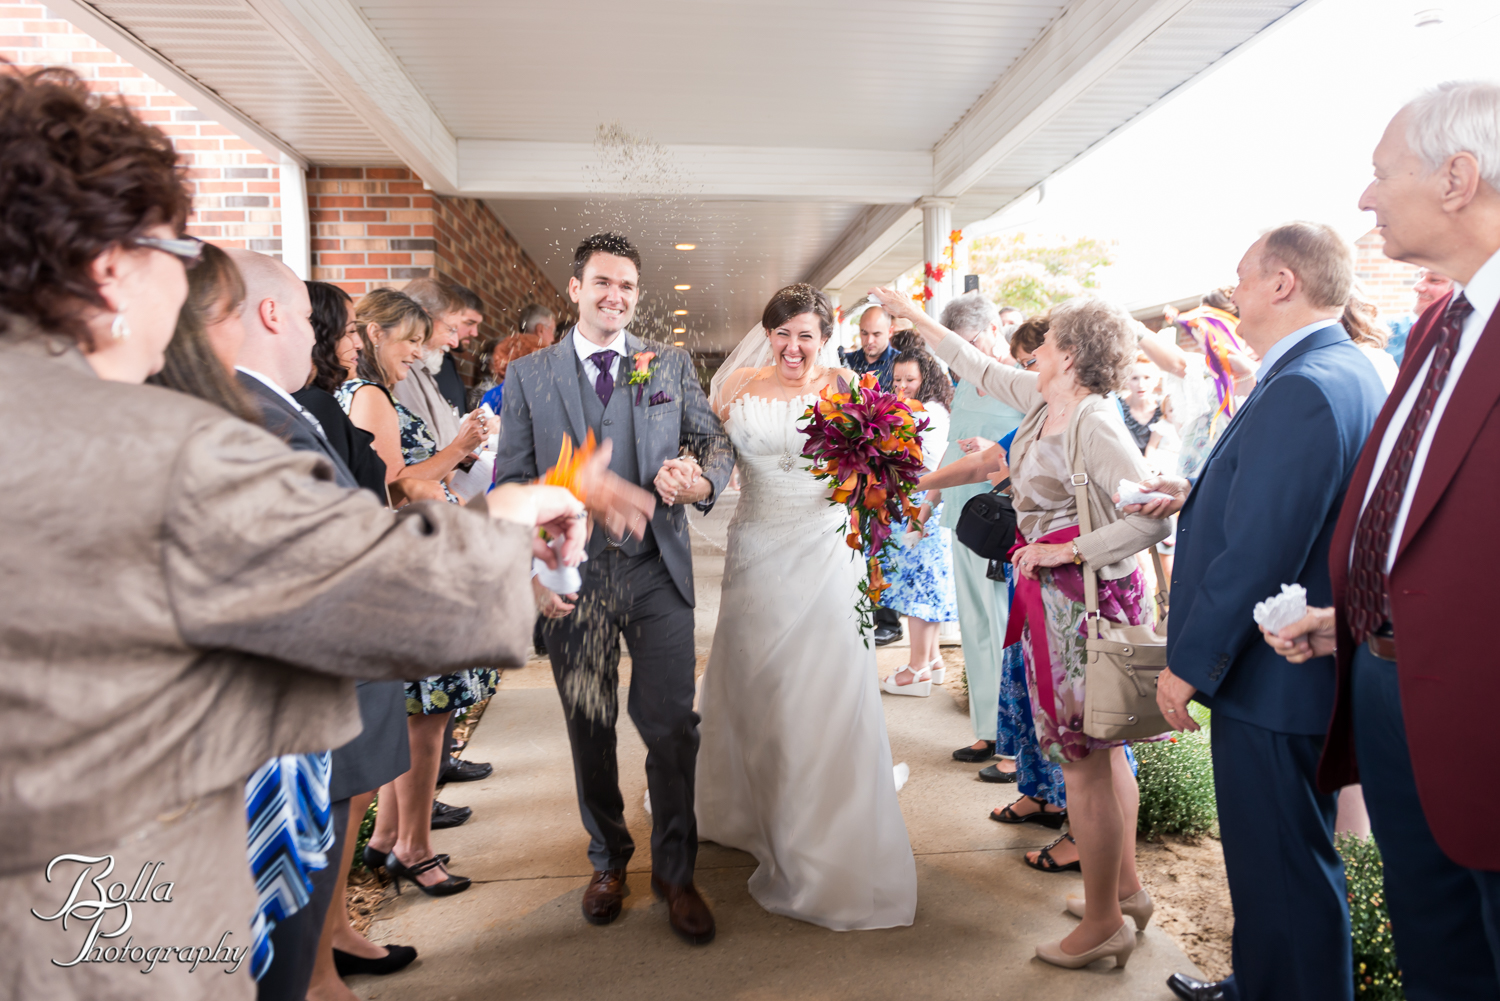 Bolla_Photography_St_Louis_wedding_photographer-0239.jpg